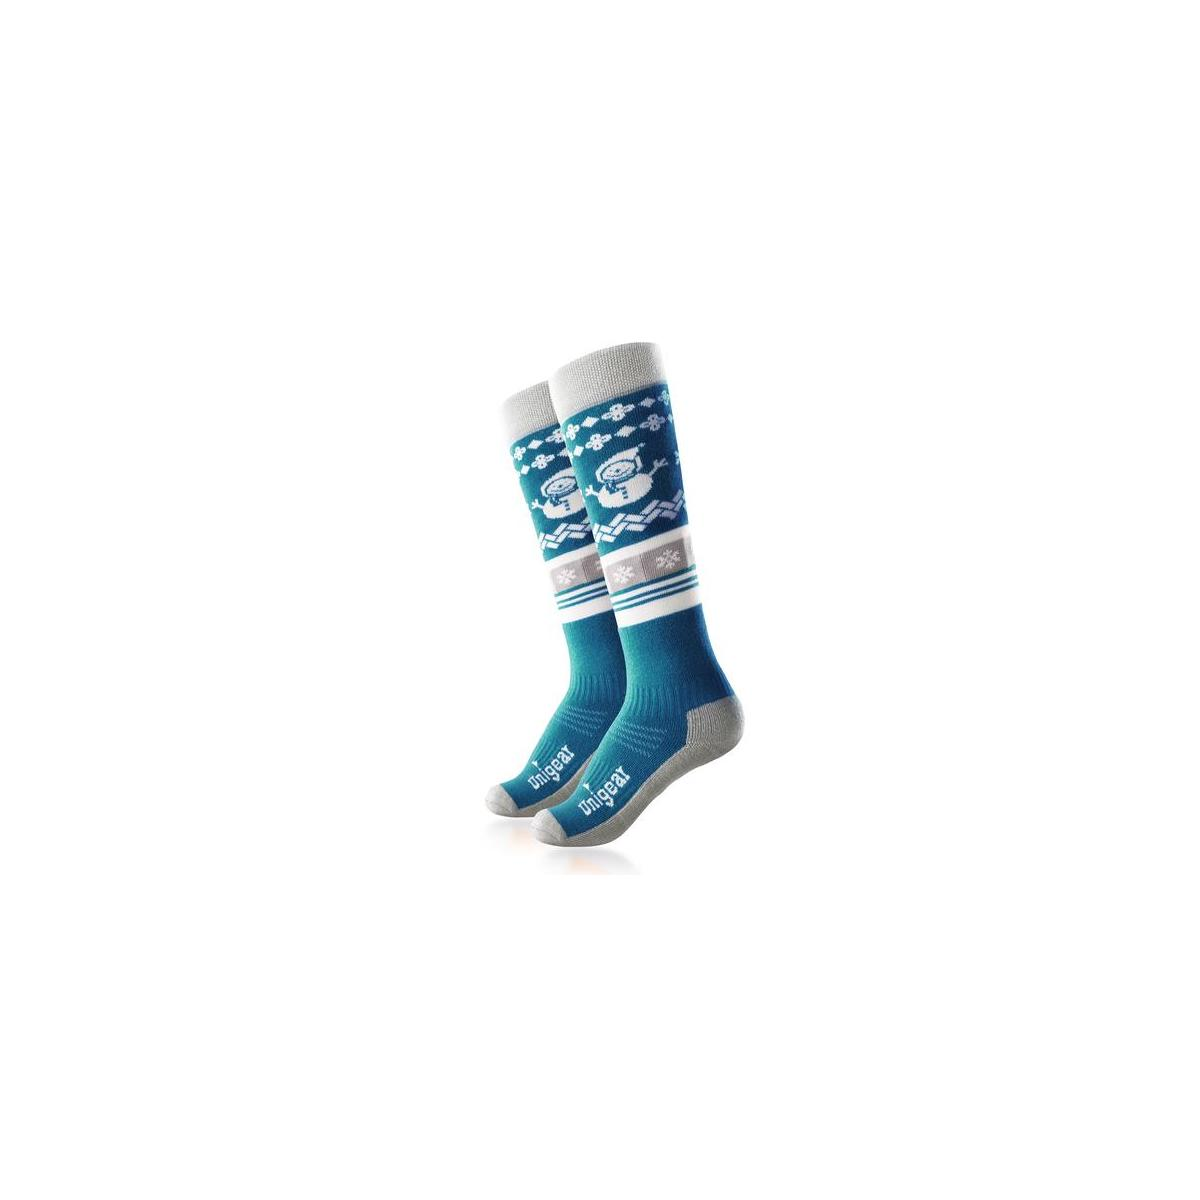 Kids Ski Socks, Merino Wool Warm and Soft Winter Socks, Over The Calf(All Sizes and Colors Are Available)